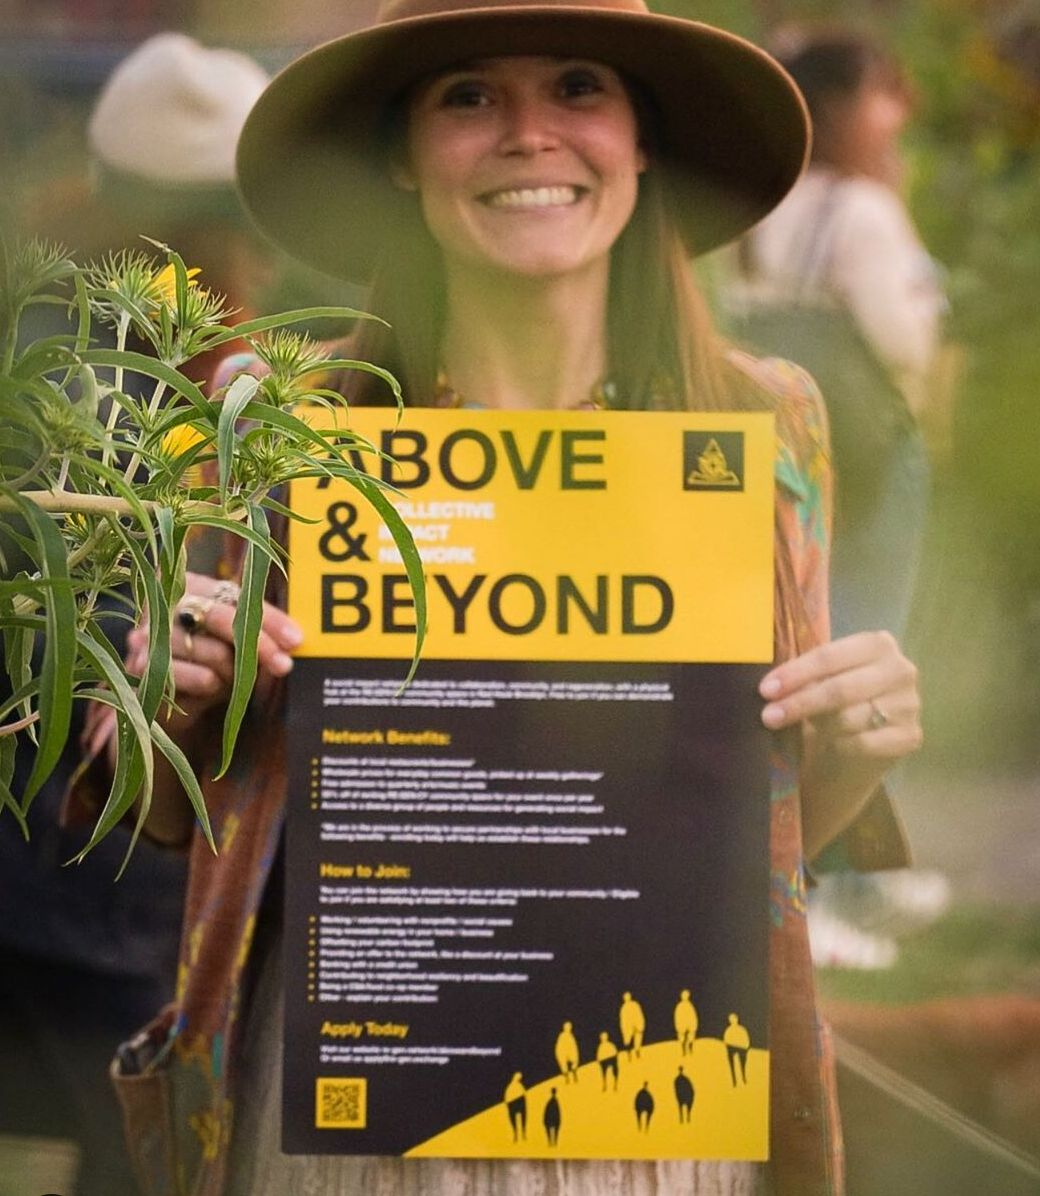 Ashley Taylor, Founder of Regency Space, display sign for the new Above and Beyond Membership Program